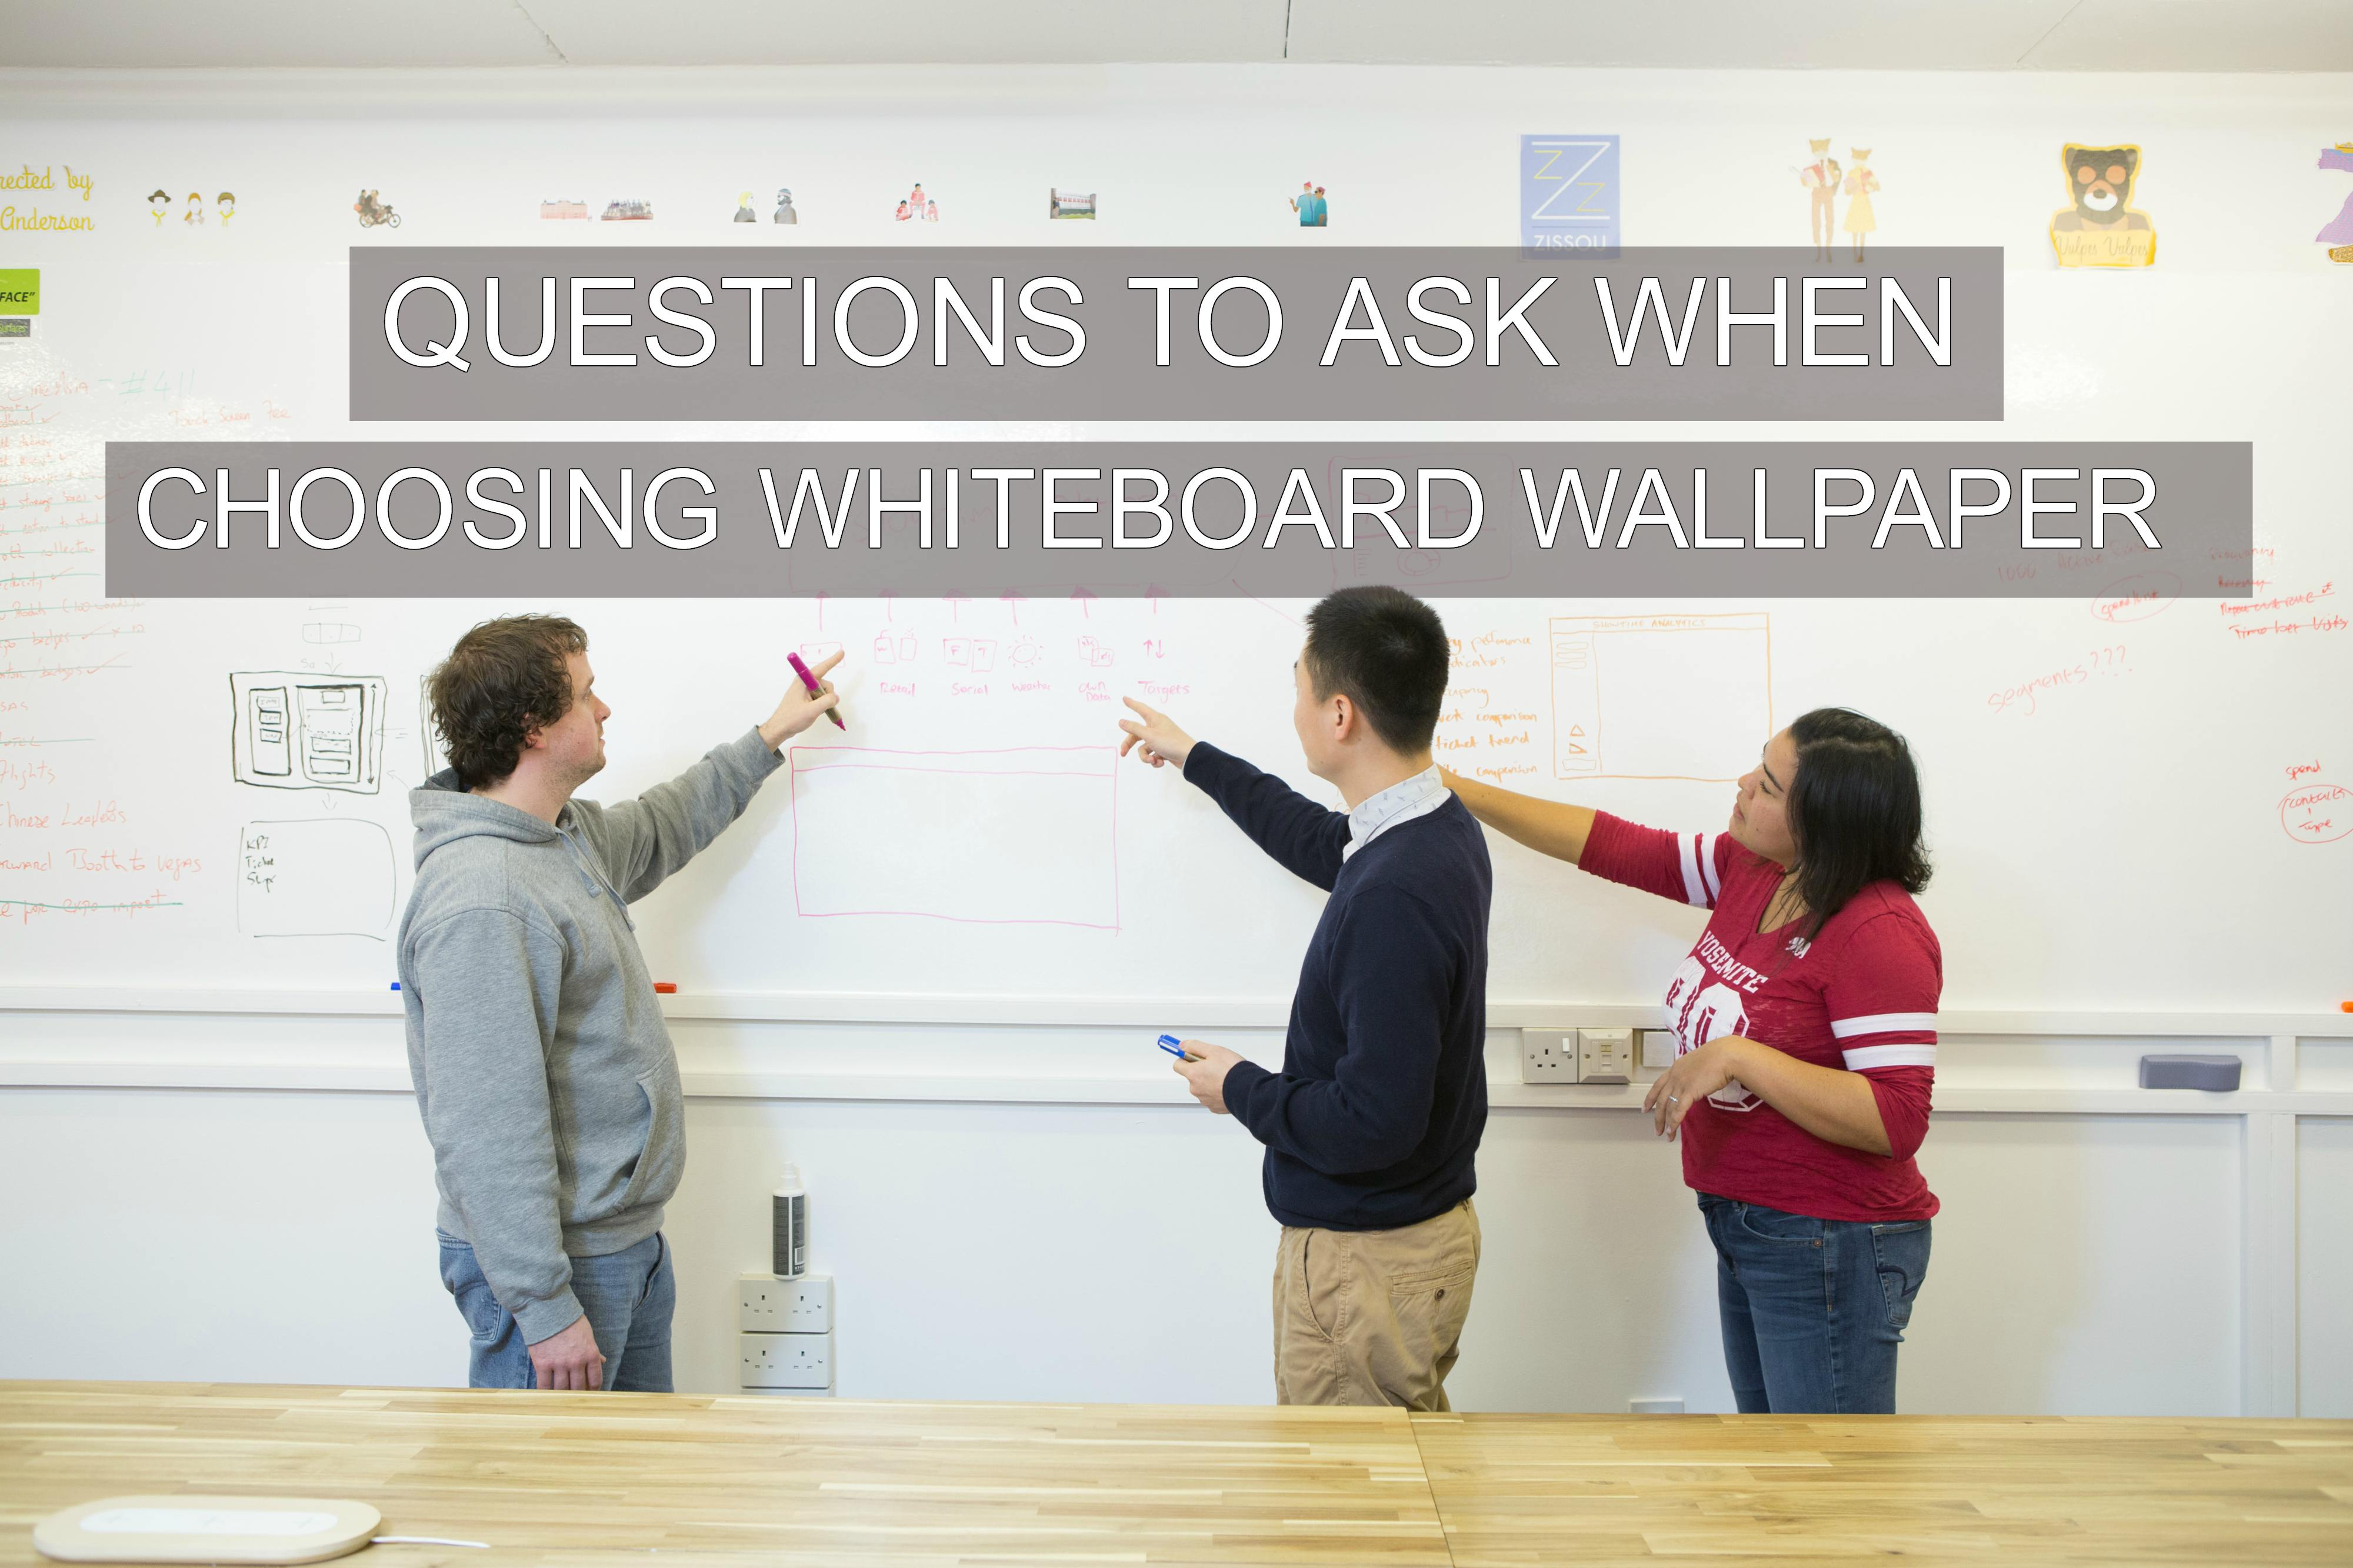 Questions To Ask When Choosing Whiteboard Wallpaper   Smarter 4000x2666